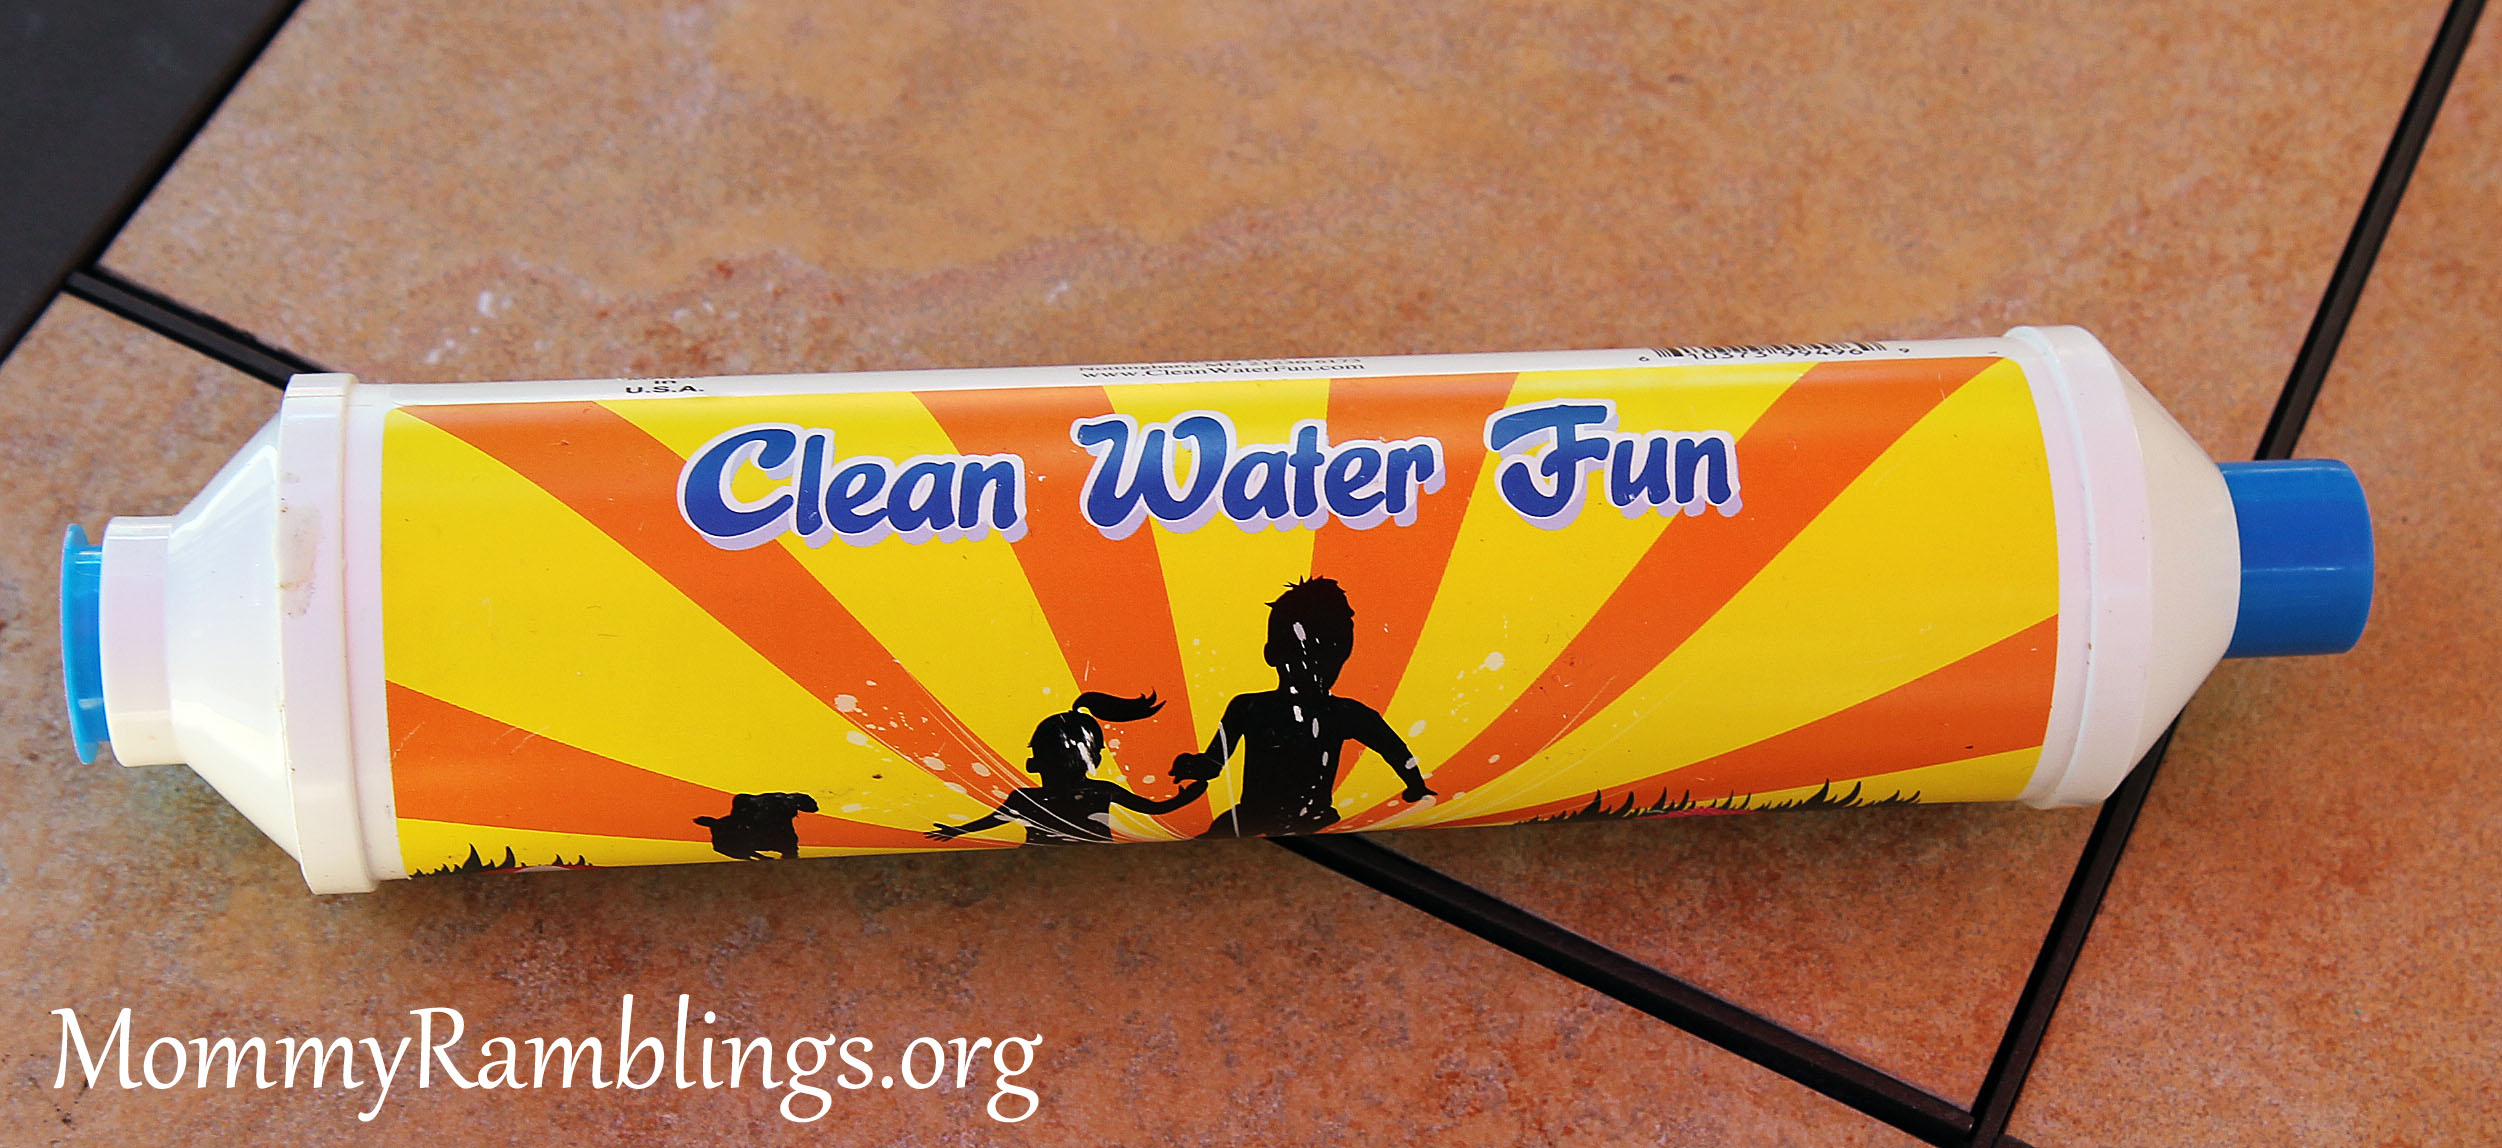 Clean Water Fun Garden Hose Filter Review Giveaway 10 Off Coupon Code Mommy Ramblings